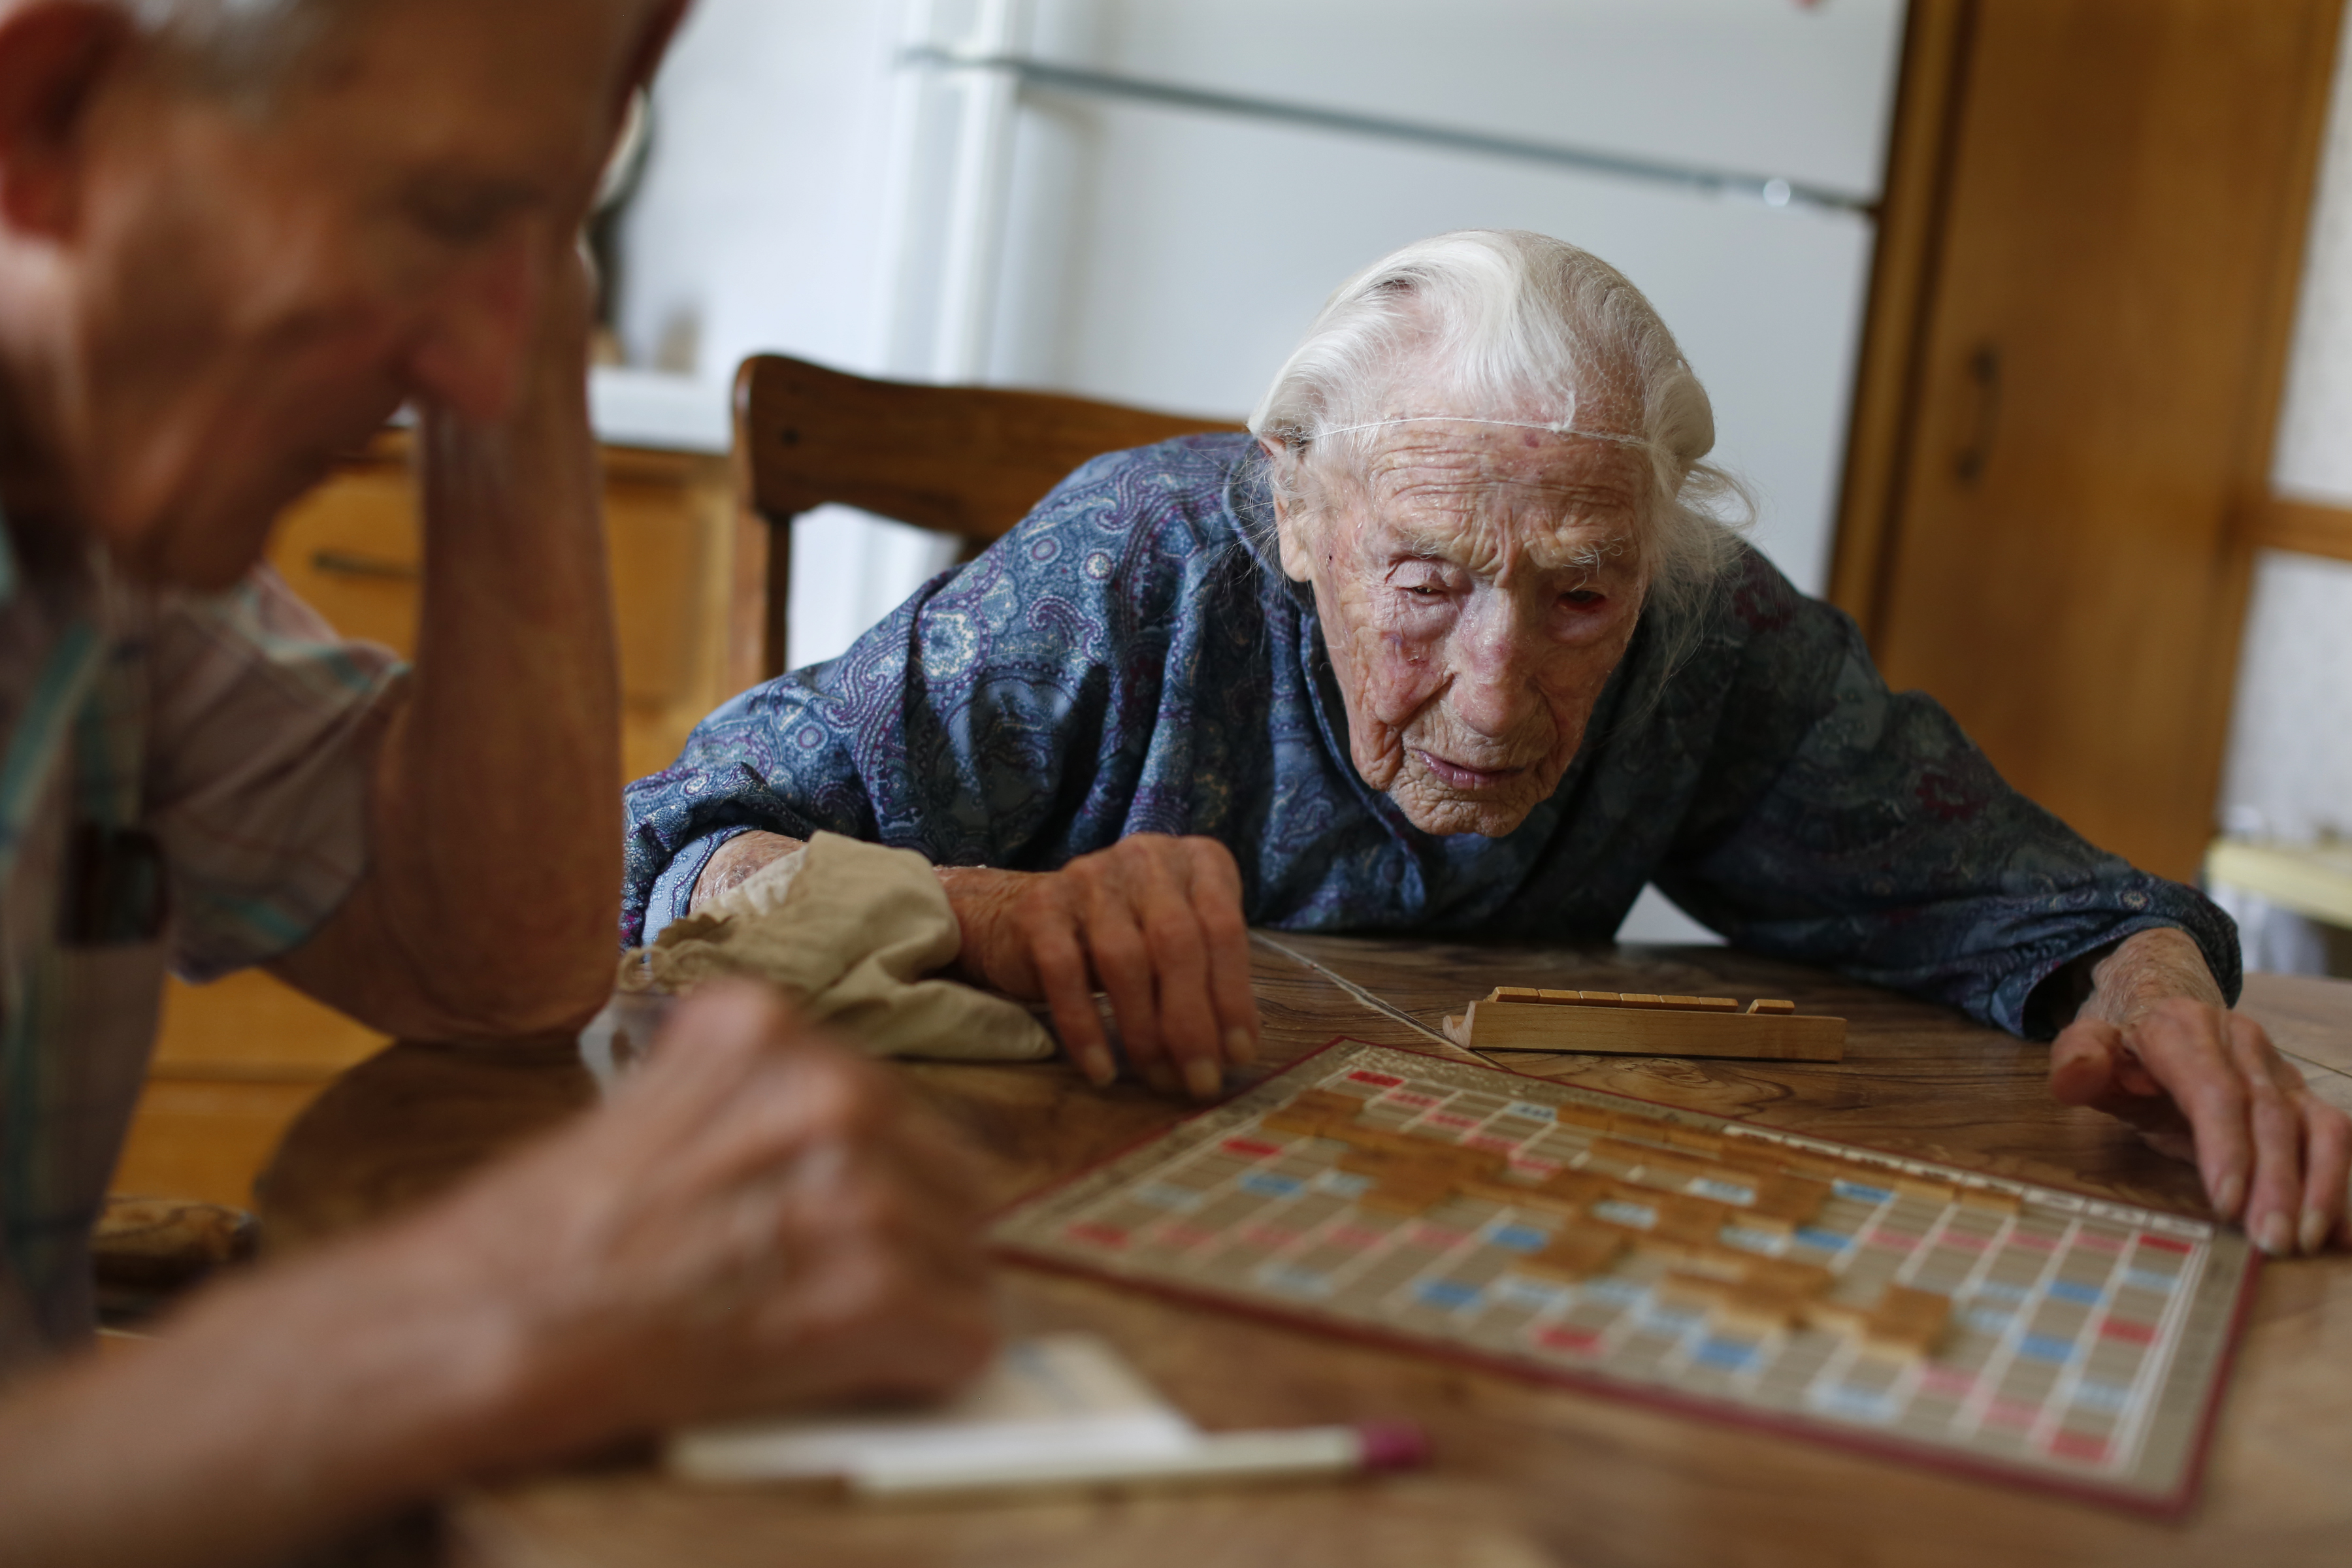 At her home in Pottsdam, Minn., Anna Stoehr plays Scrabble with her son Harlan, 83, who is changing the hoses on her washer